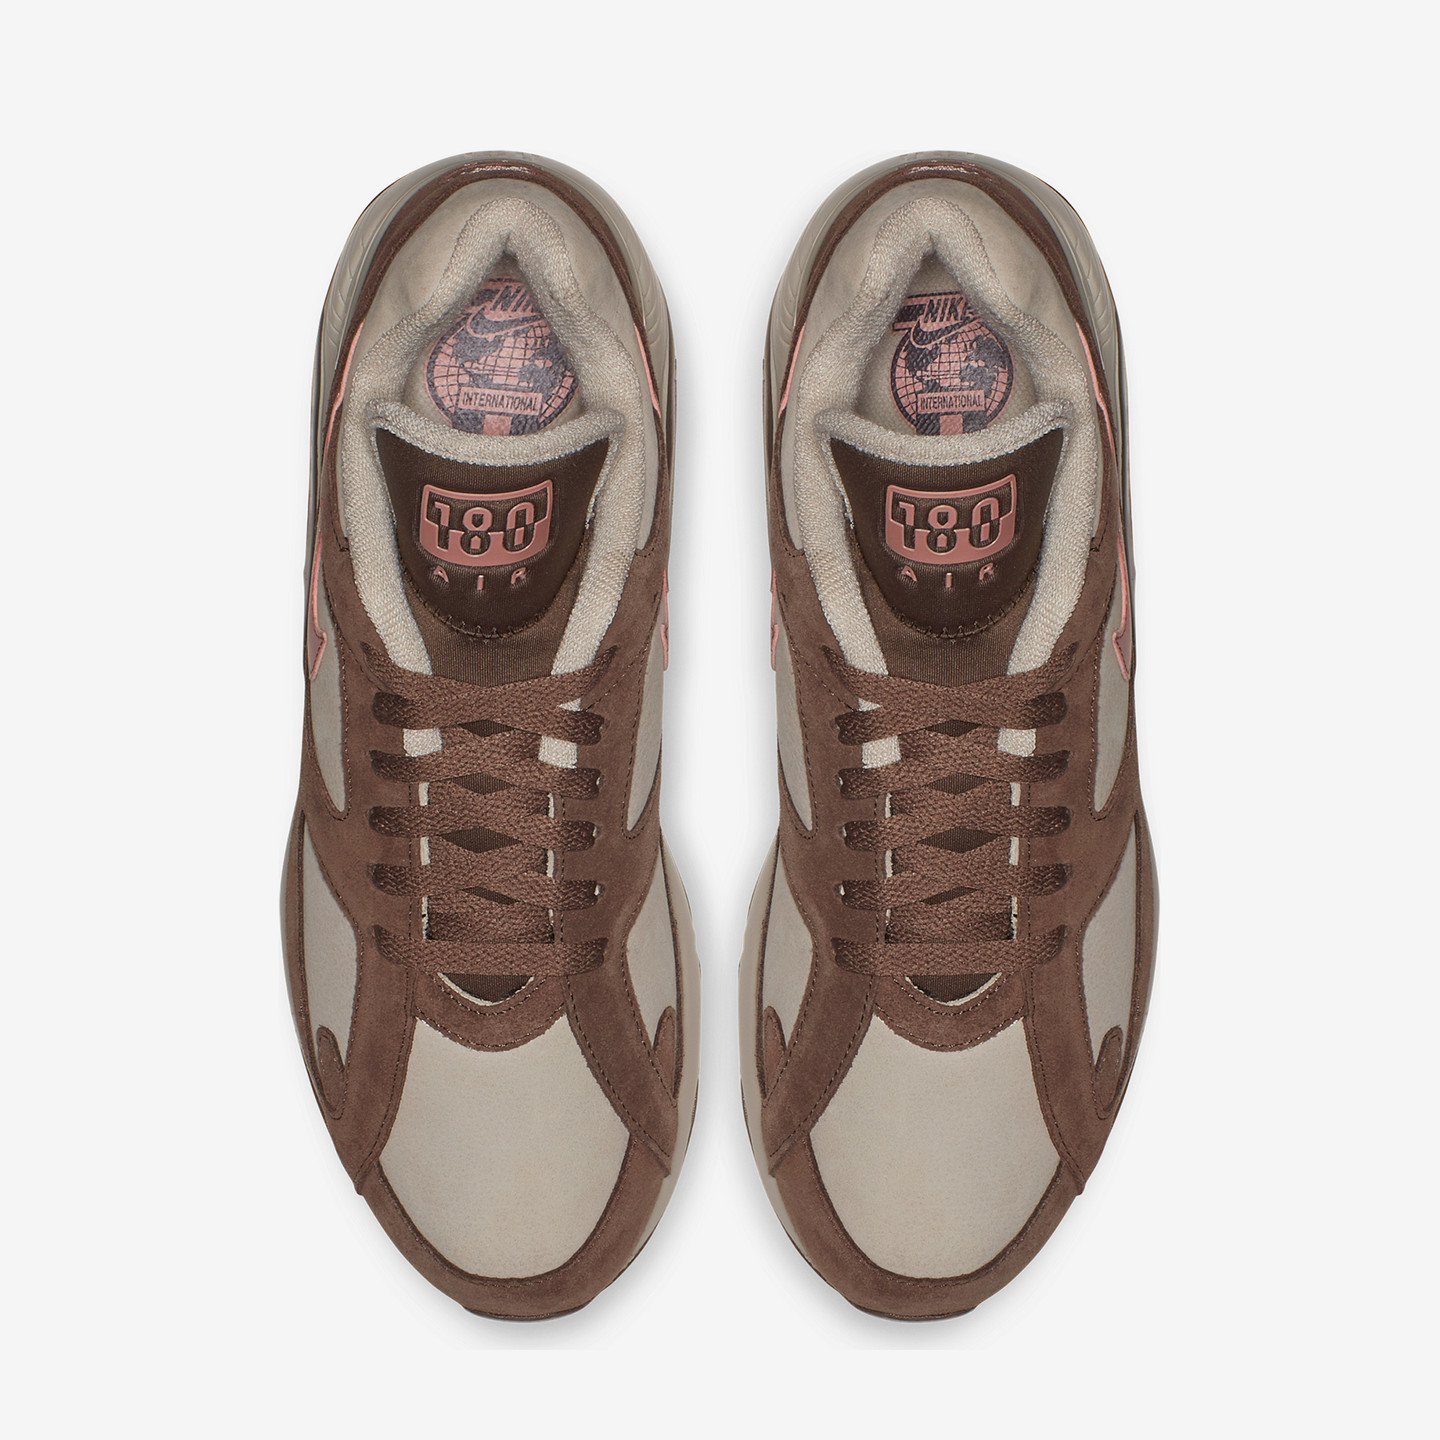 Nike Air Max 180 'Baroque Brown' String / Rust Pink / Baroque Brown AV7023-200